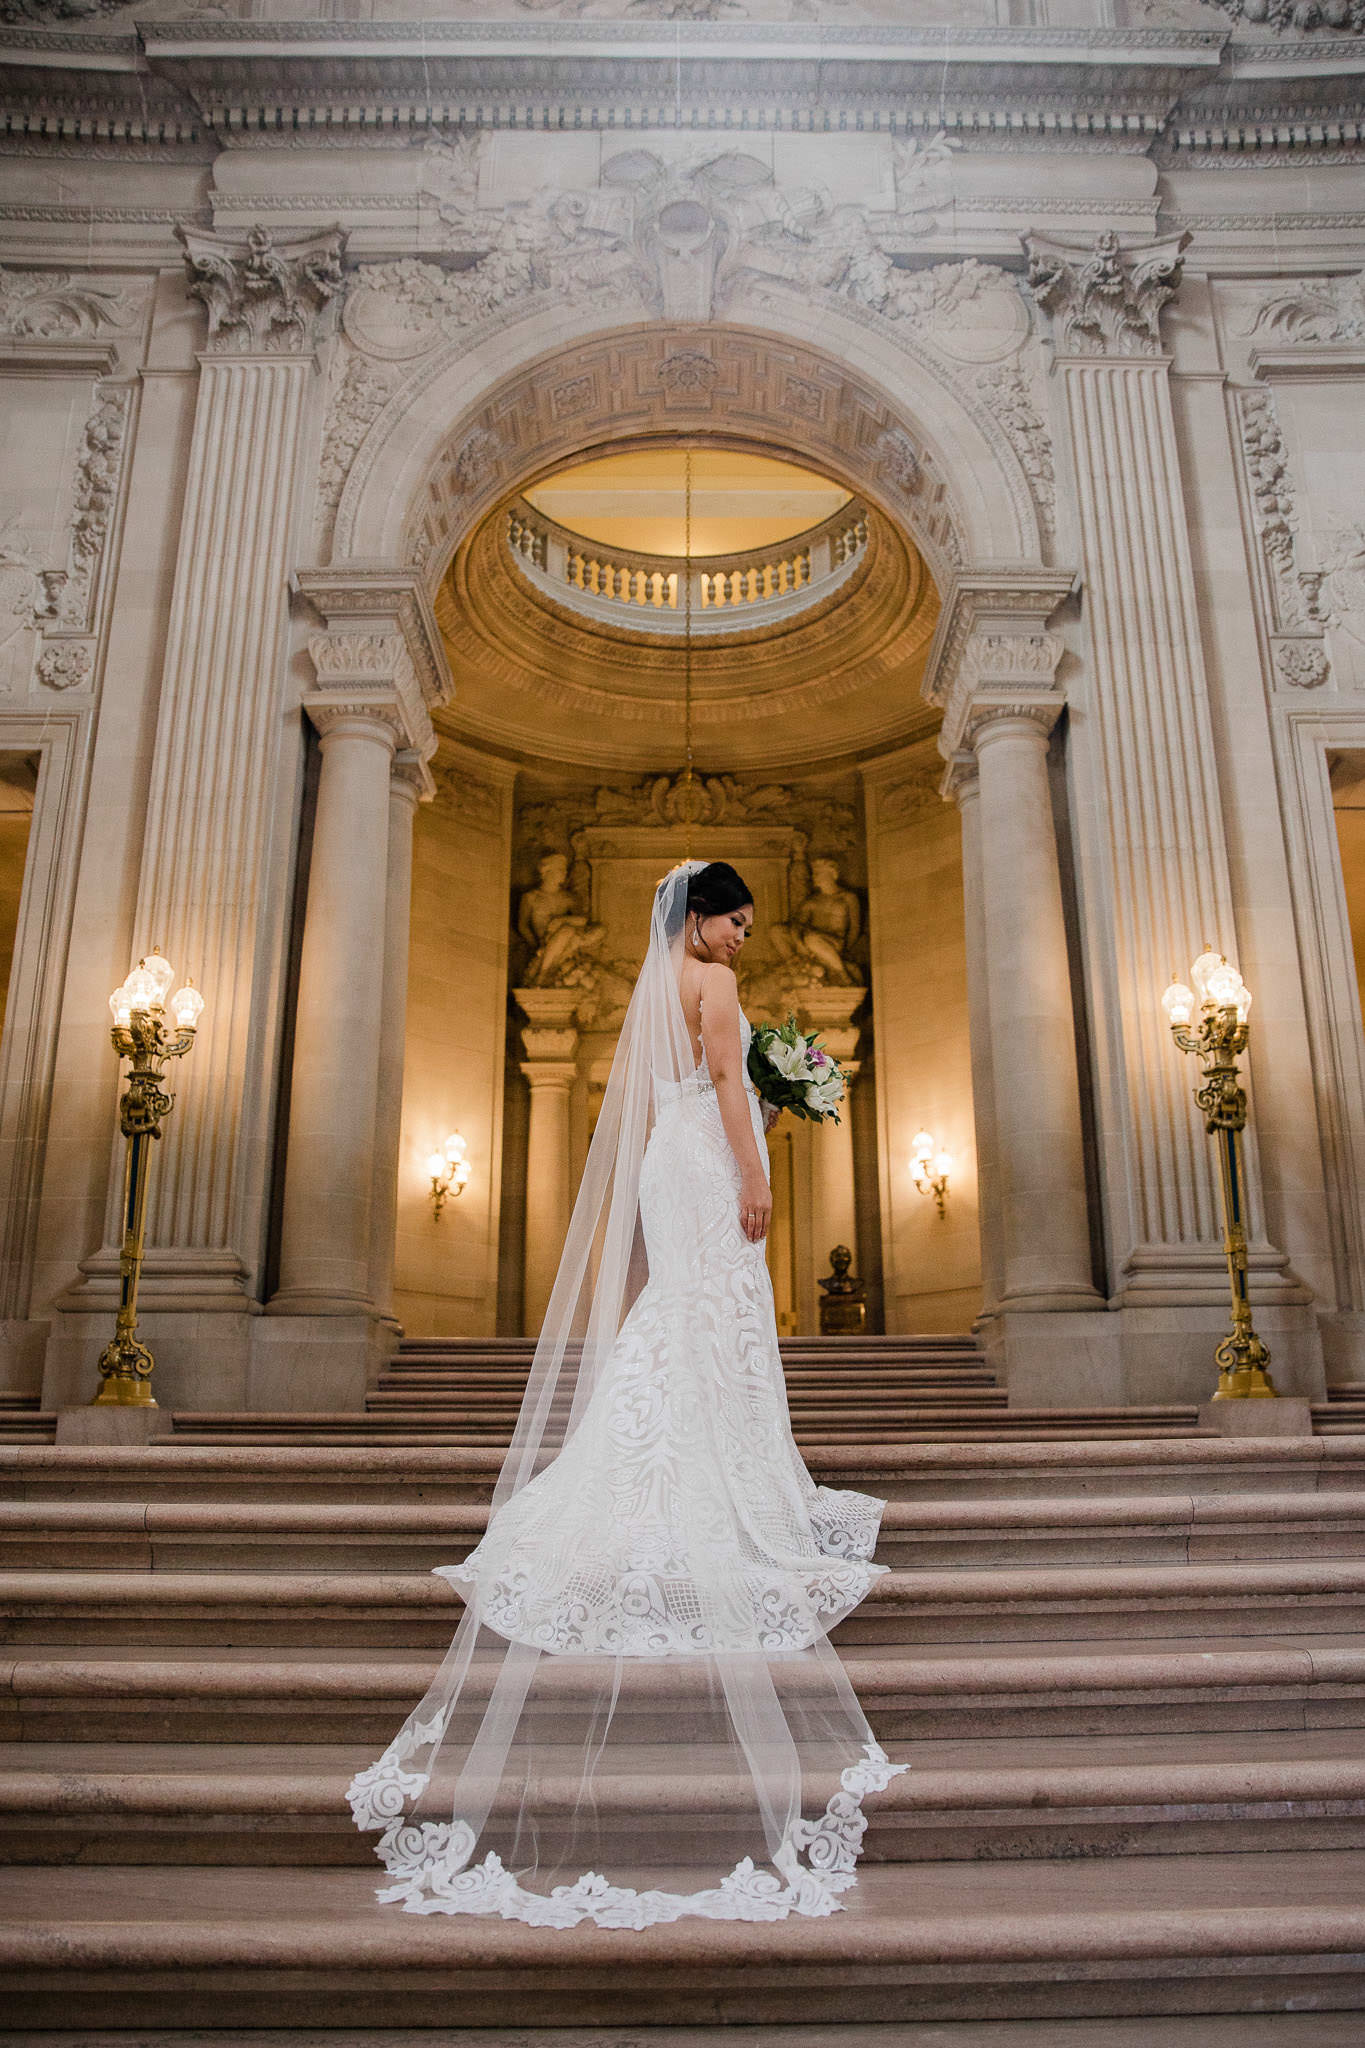 Bride's dress and veil drape down the stairs of San Francisco City Hall